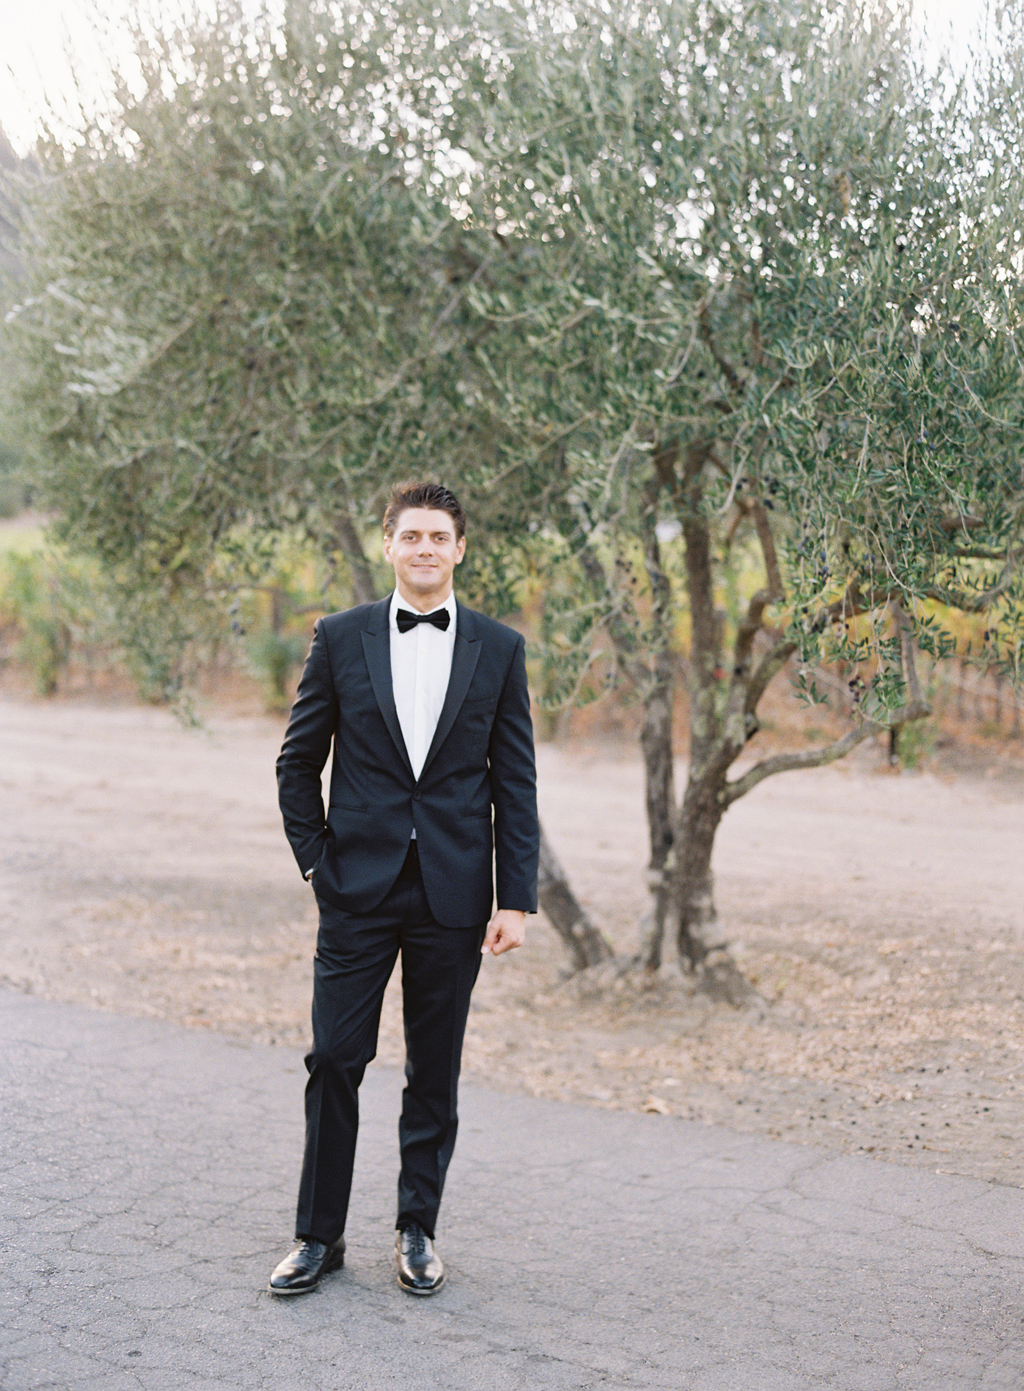 A groom poses in front of an olive tree in napa valley, california, on his wedding day.